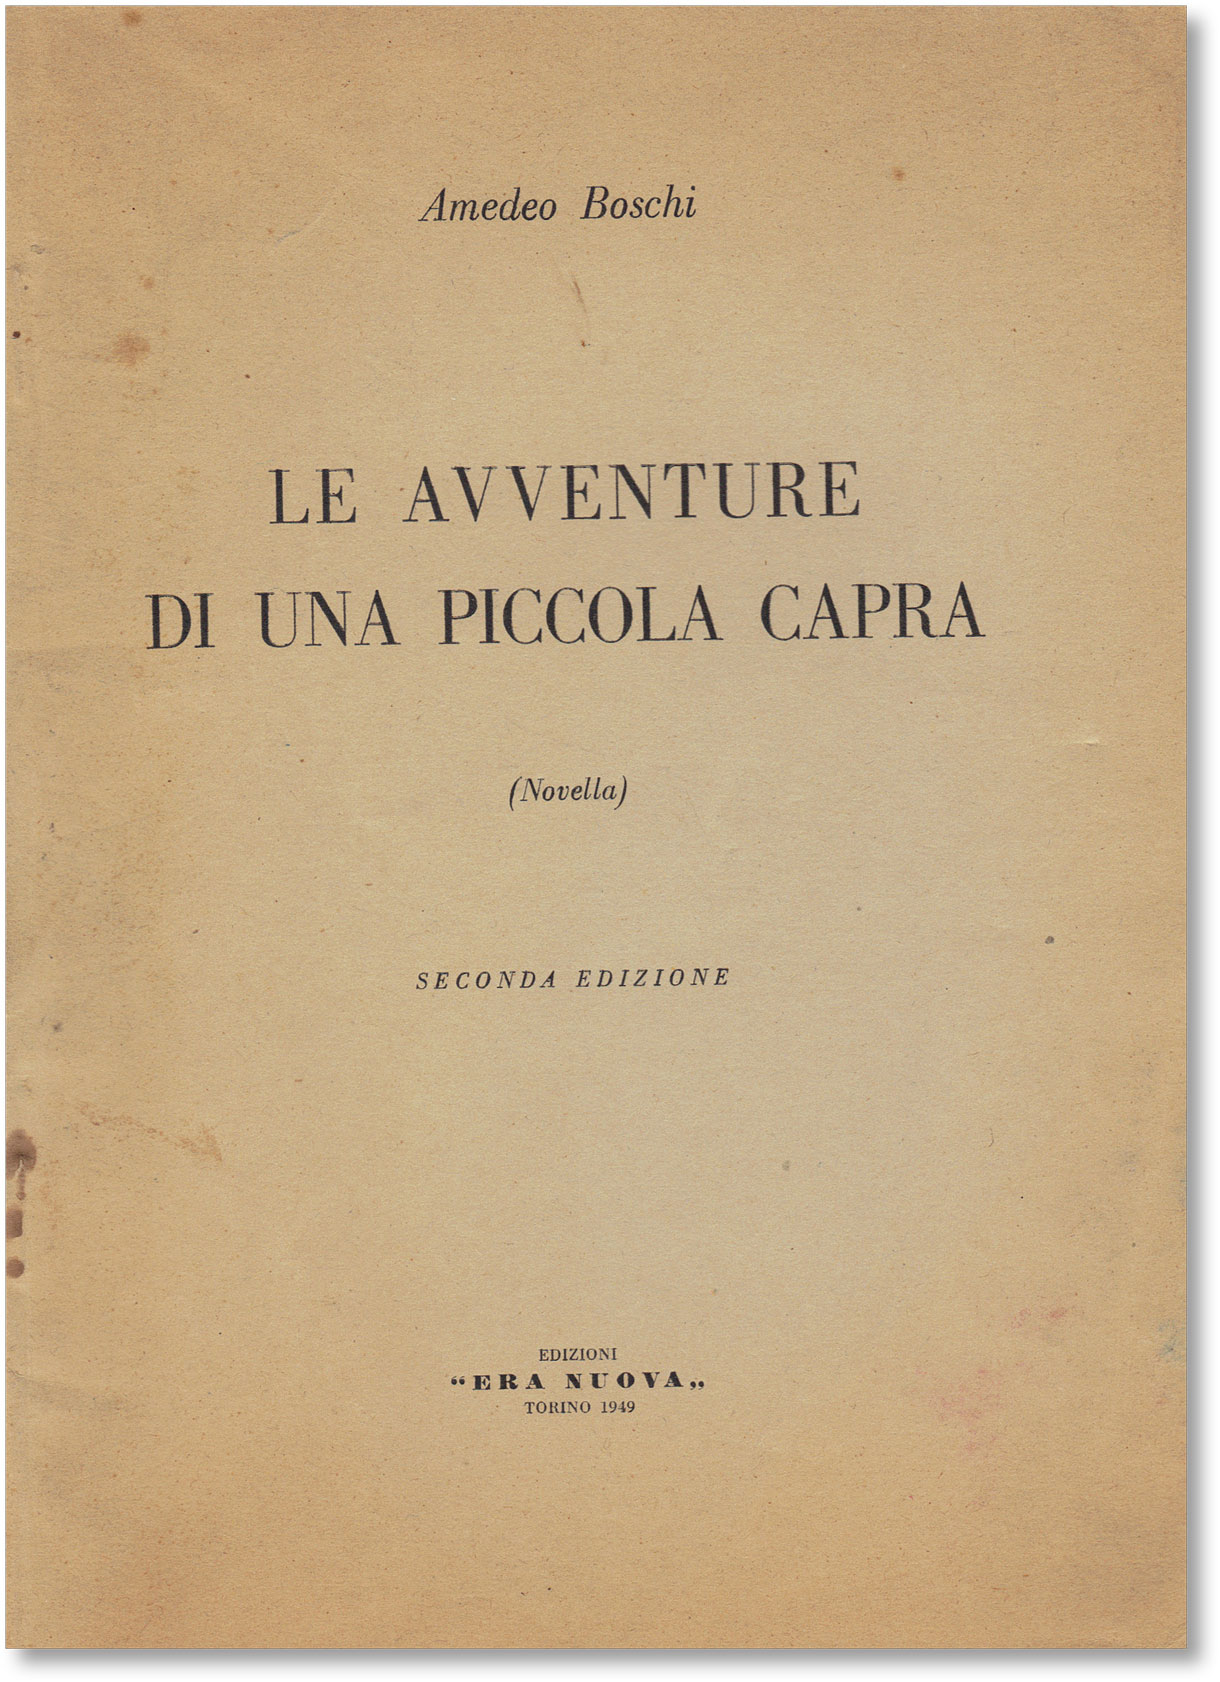 Le Avventure di Una Piccola Capra (Novella). ANARCHISM, Amedeo BOSCHI, FICTION.